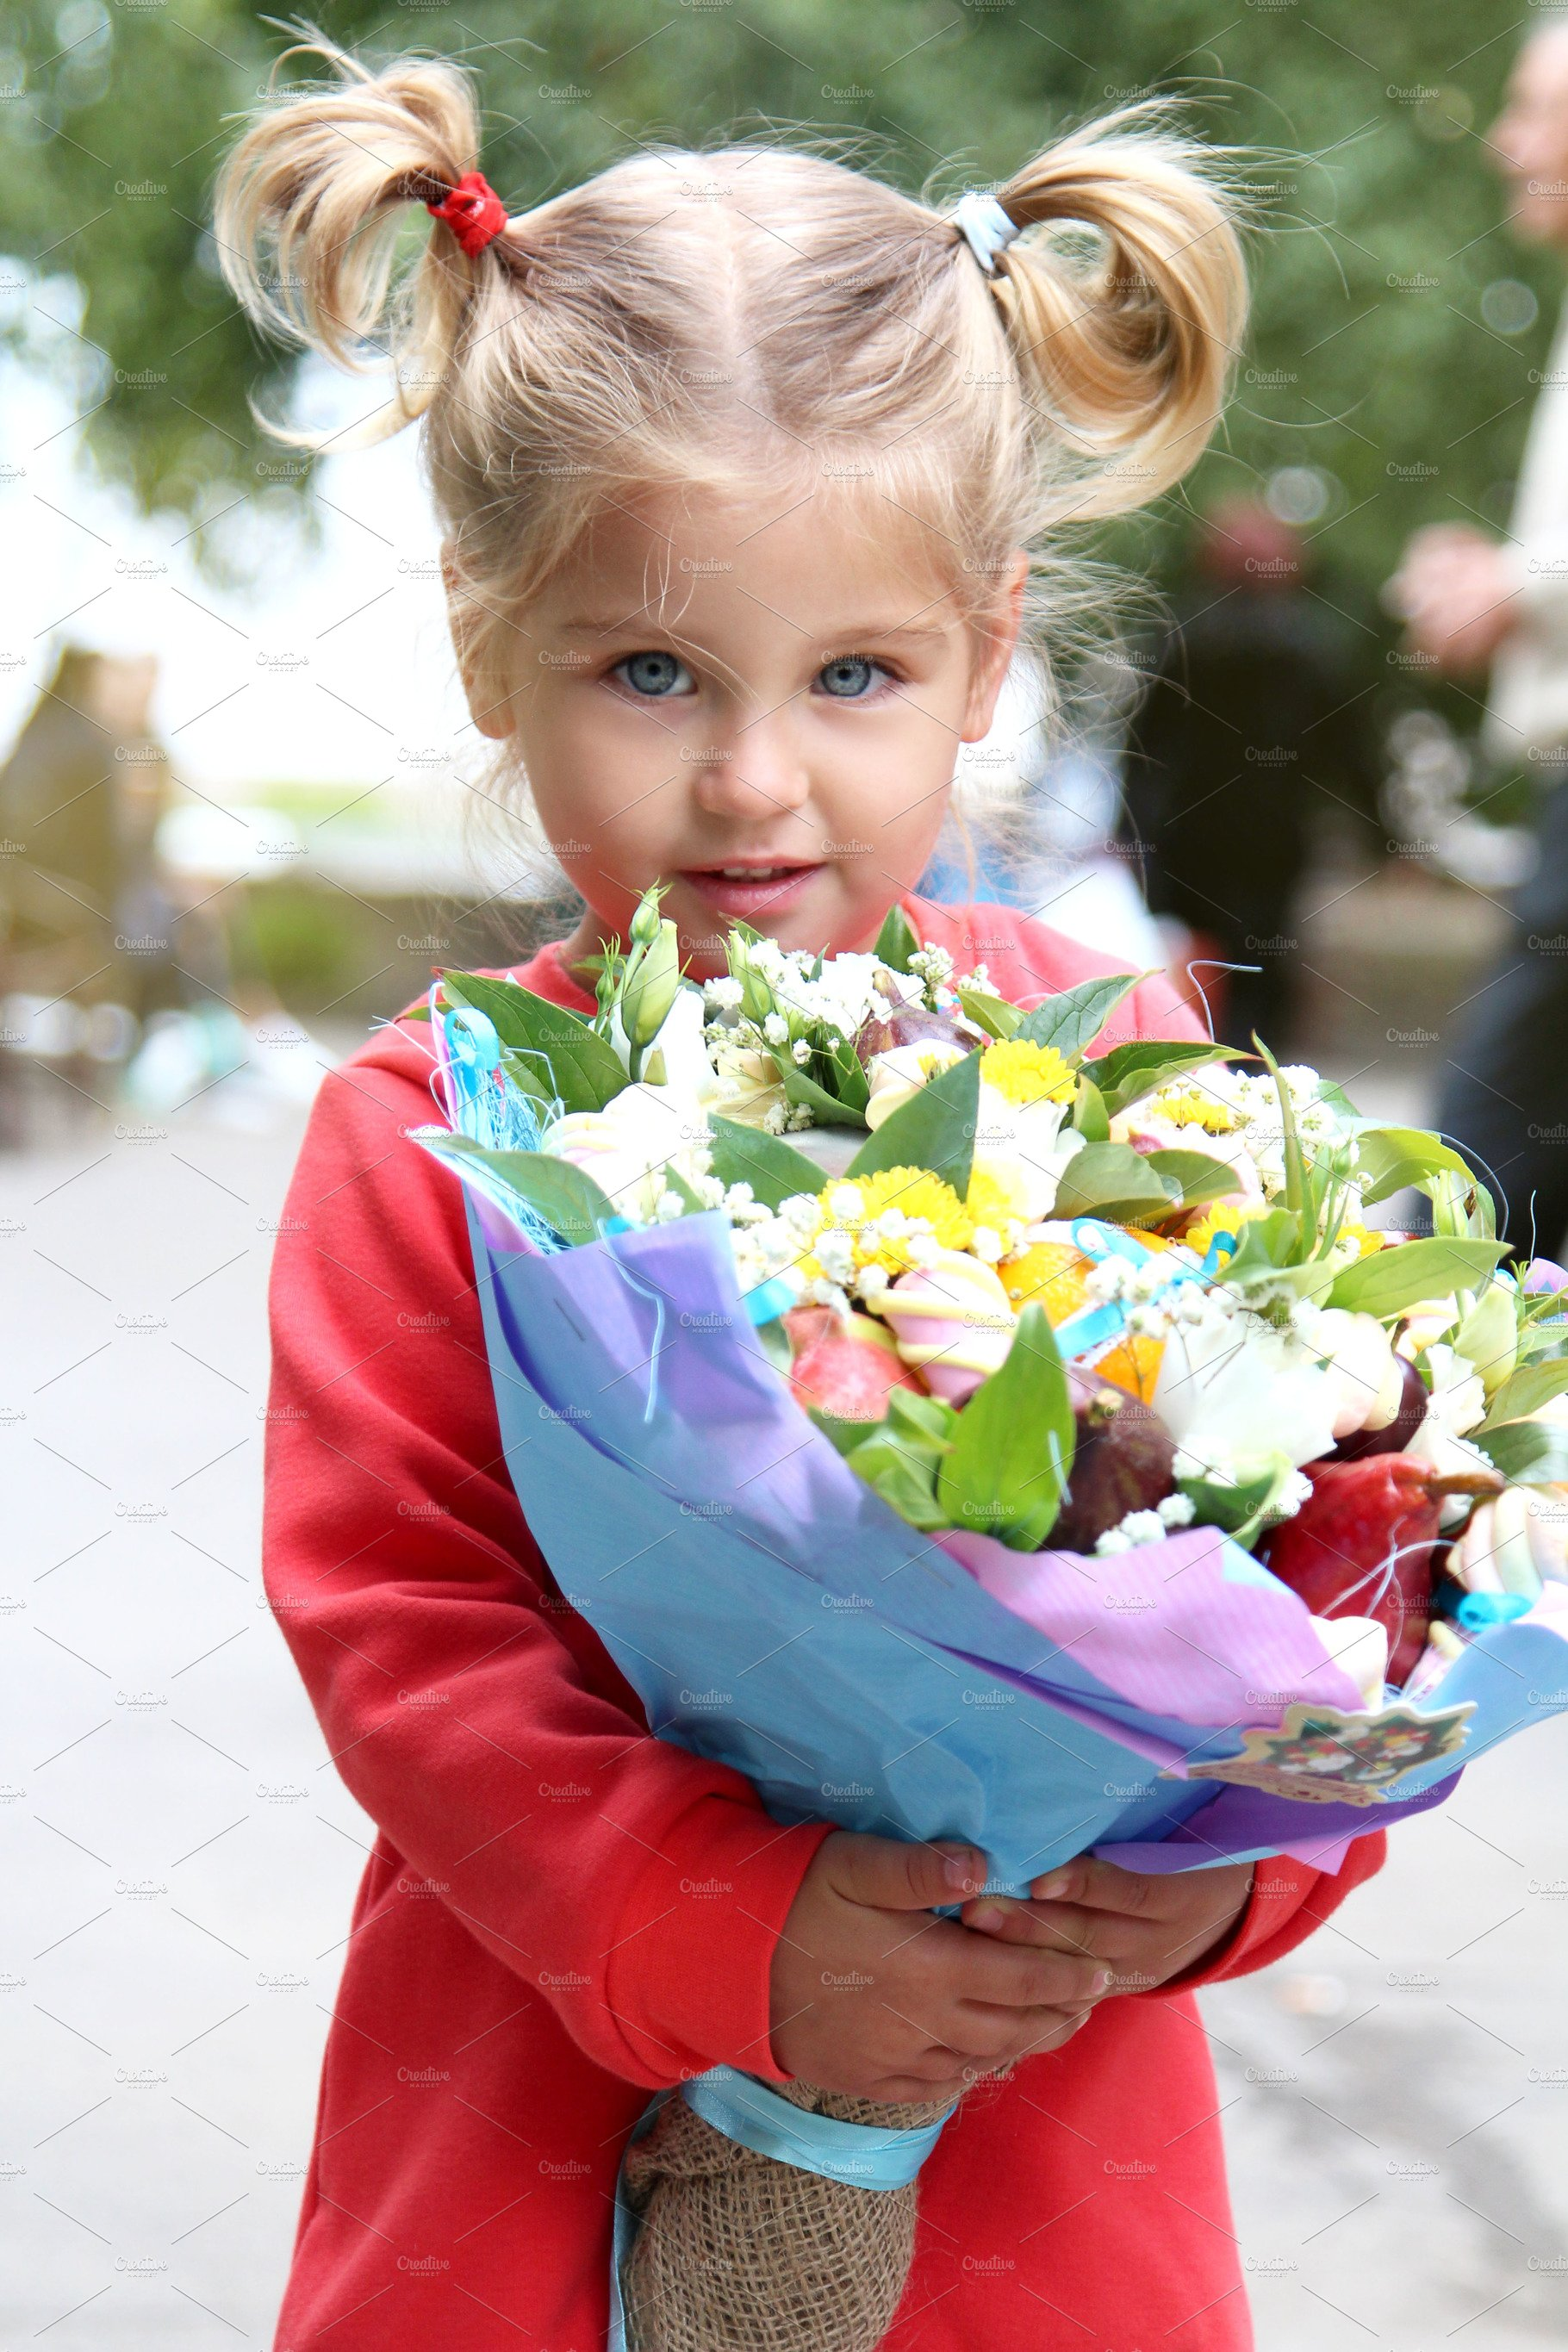 Girl Is Holding A Bouquet Of Flowers People Images Creative Market